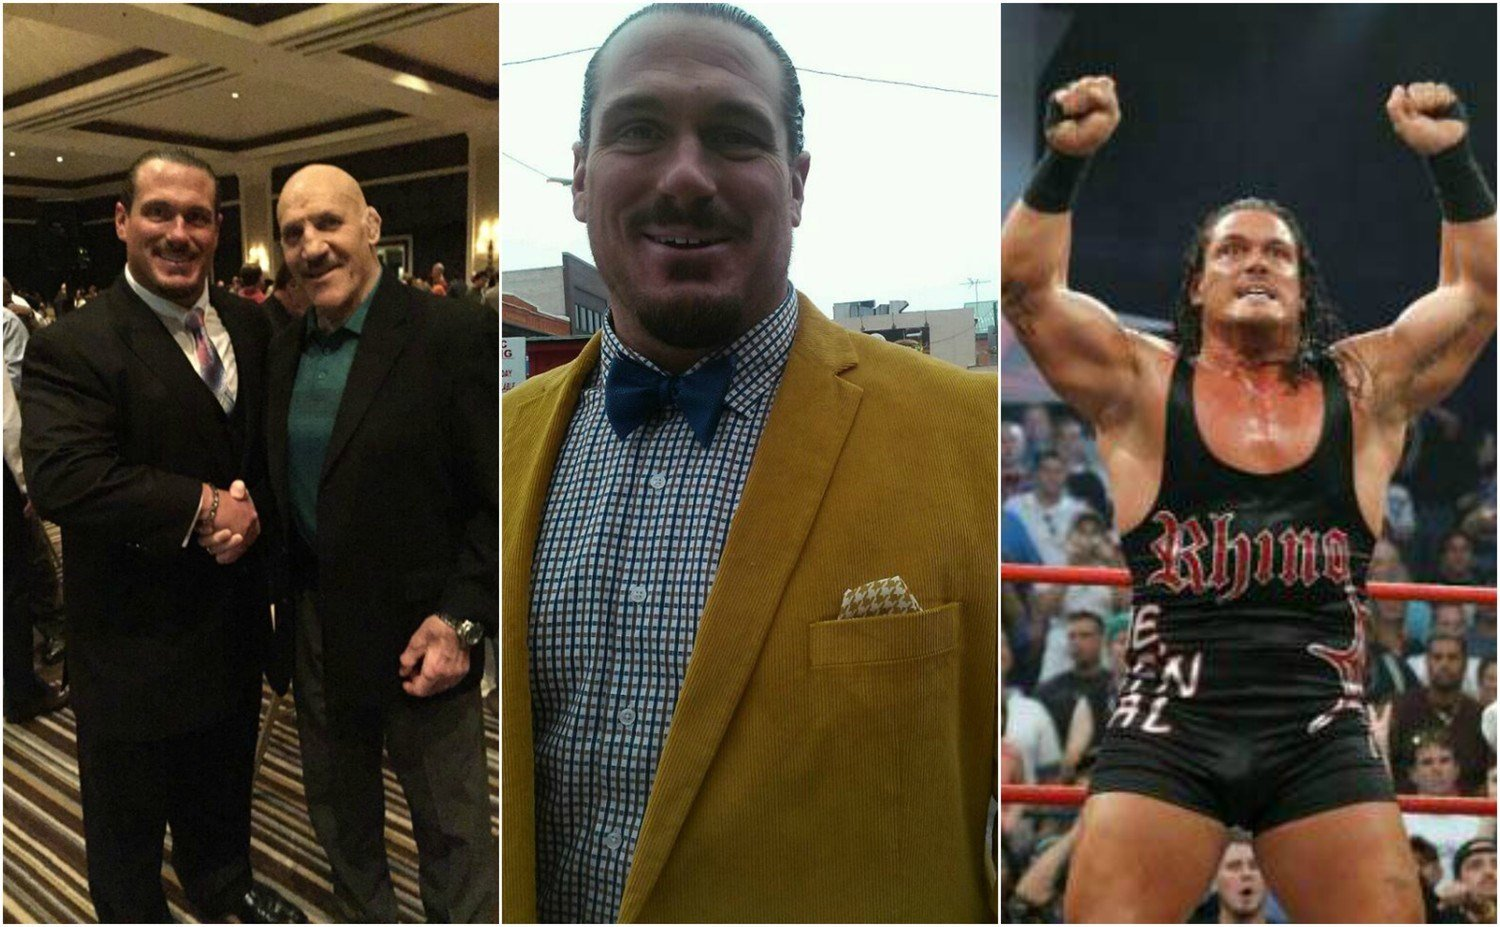 Terrance Gerin, also known as the professional wrestler Rhyno, won the GOP Primary for Michigan's 15 district State House seat Tuesday. (TerranceGuidoGerin.com)